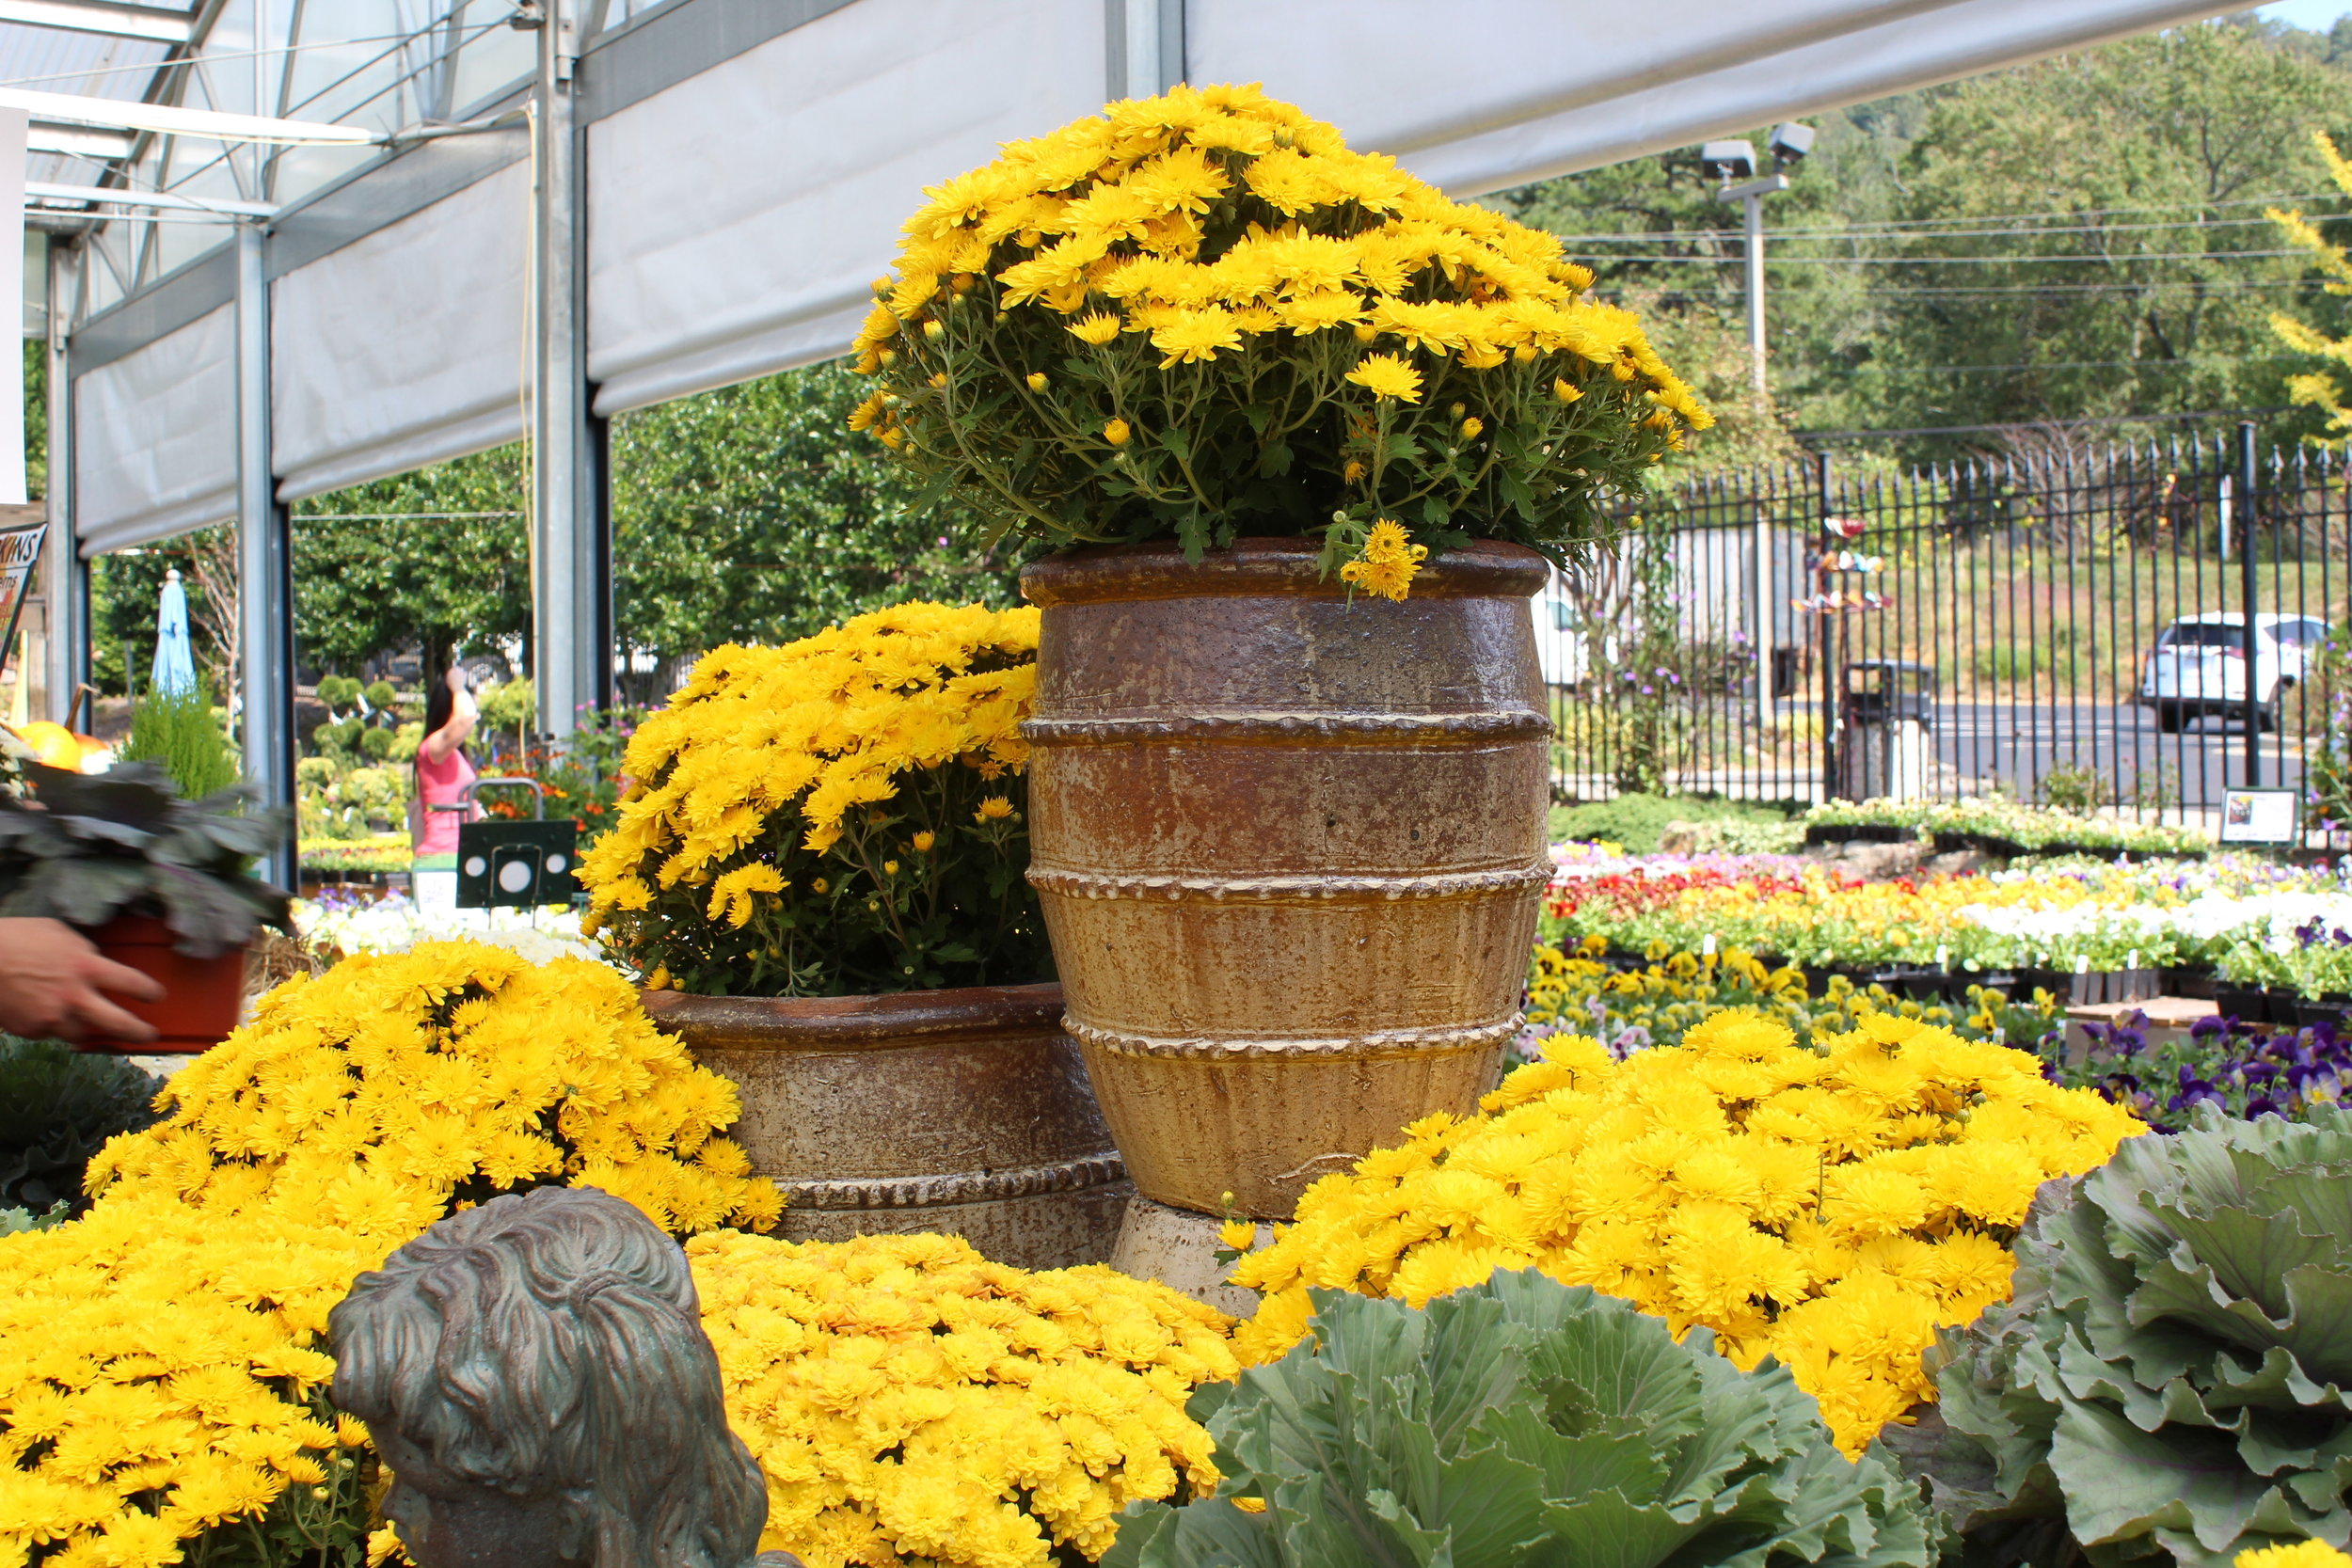 Glazed ceramic pots like this one can stay out all winter. Once these mums are gone, a winter container garden can be planted. Just remember that your winter containers need watering, too. Root drench them at least once a week.